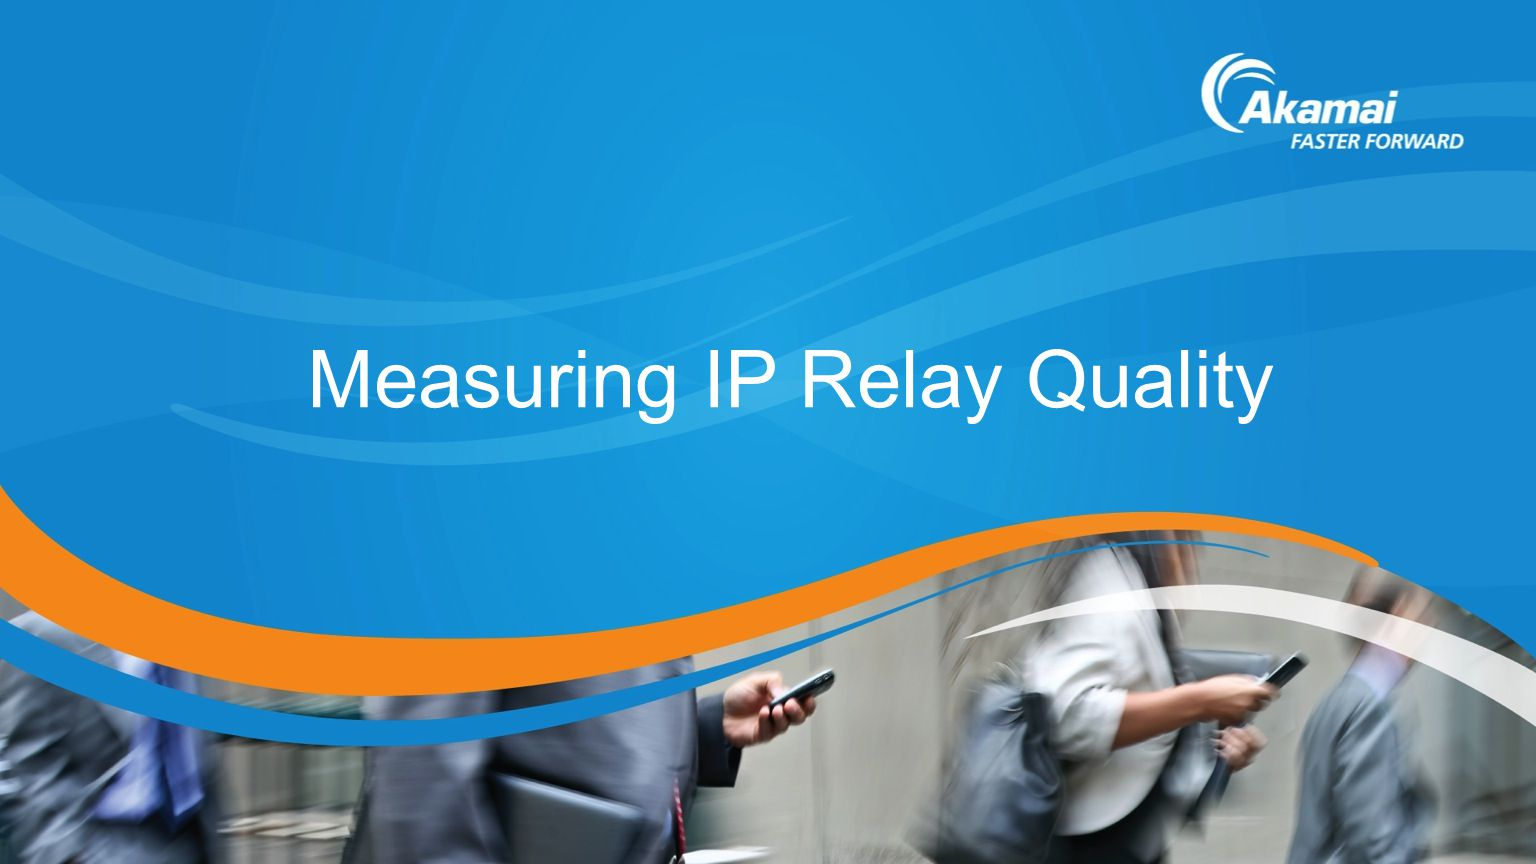 Measuring IP Relay Quality